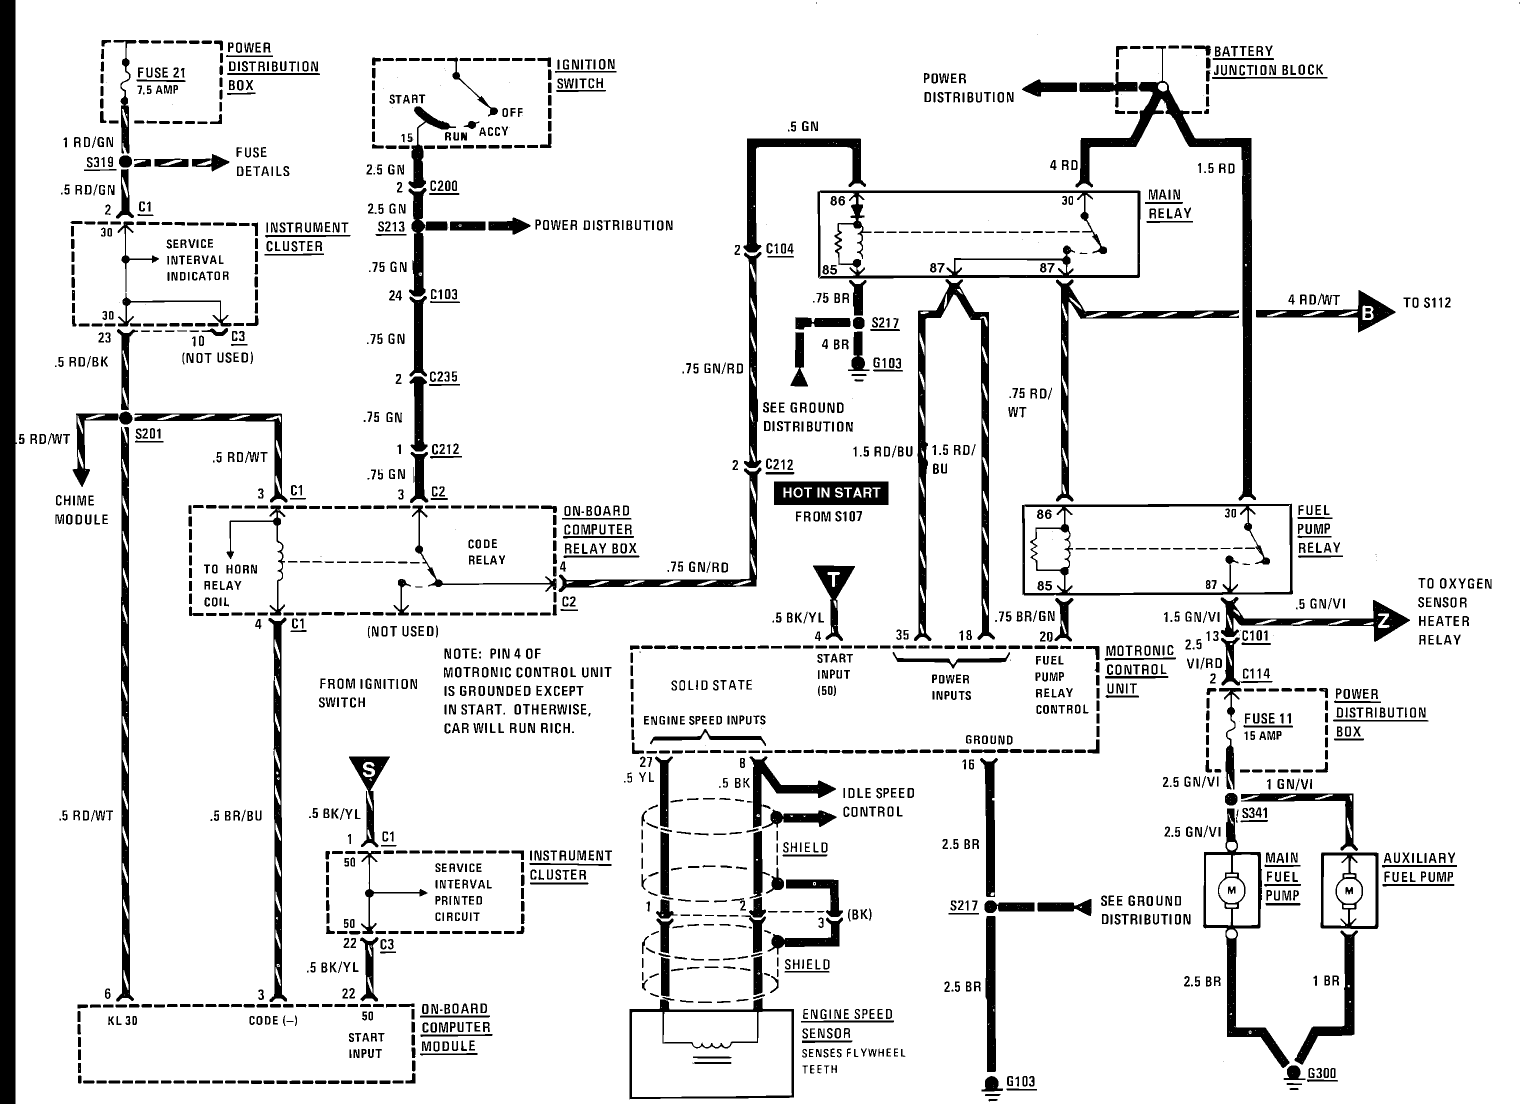 bmw m54 engine timing diagram 2002 bmw 330i vacuum diagram